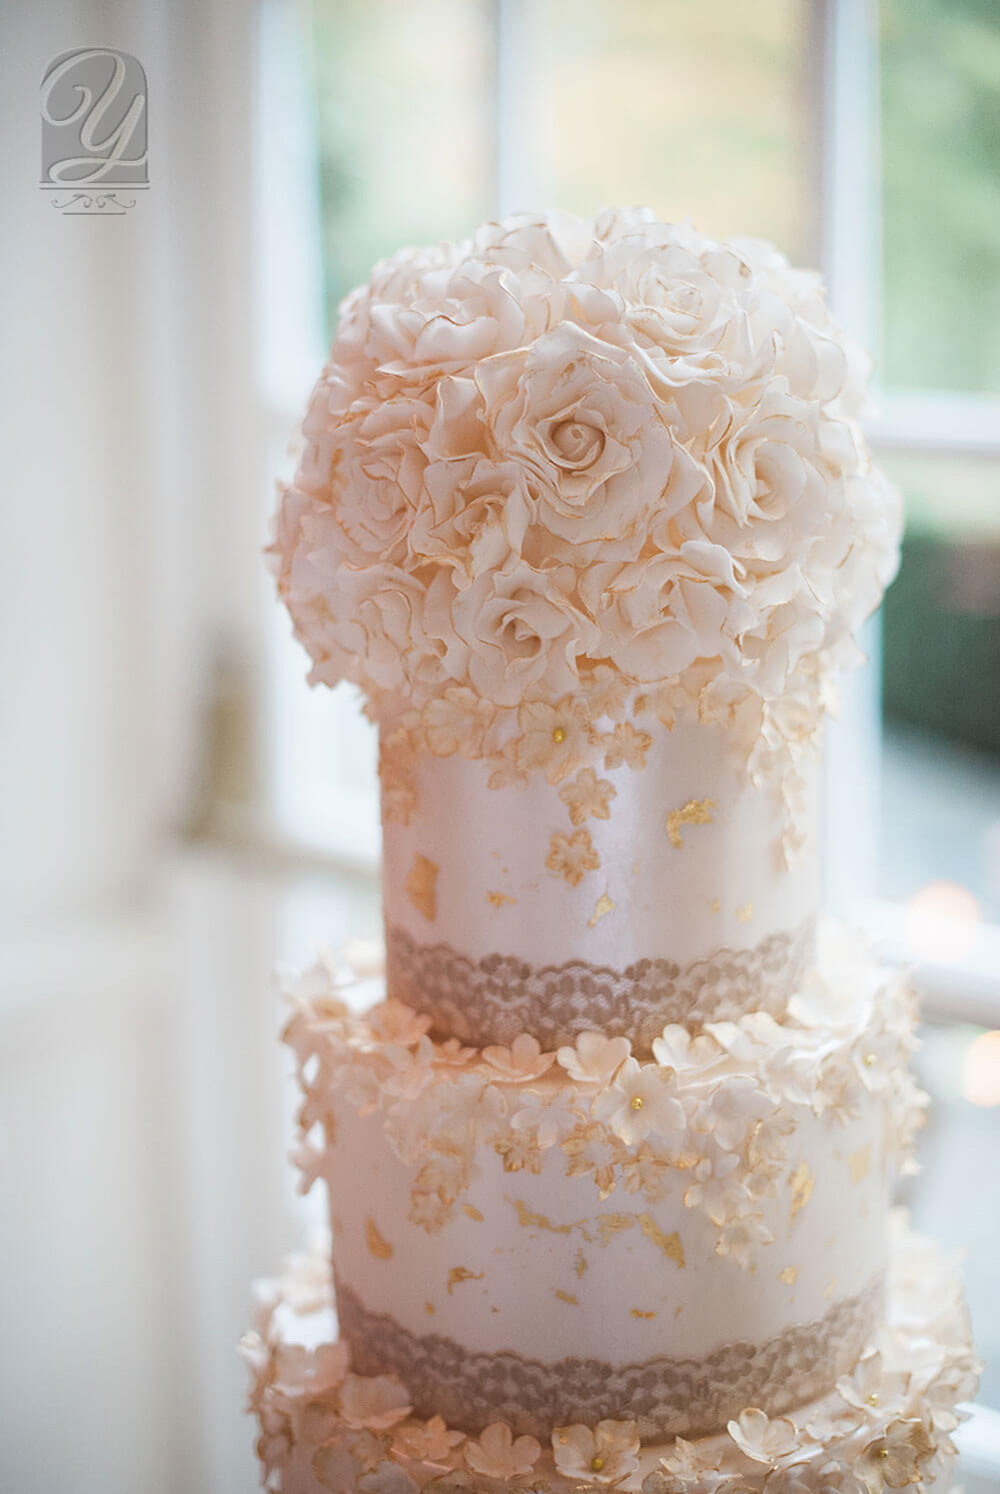 """Elie Saab Couture 2015 inspired glorious 4 tier chic gold-gilded """"Golden Rose Elegance"""", shimmering in beautiful cream hues, crowned with a burst of delicate handcrafted sugar roses from from Unique Cakes, by Yevnig"""